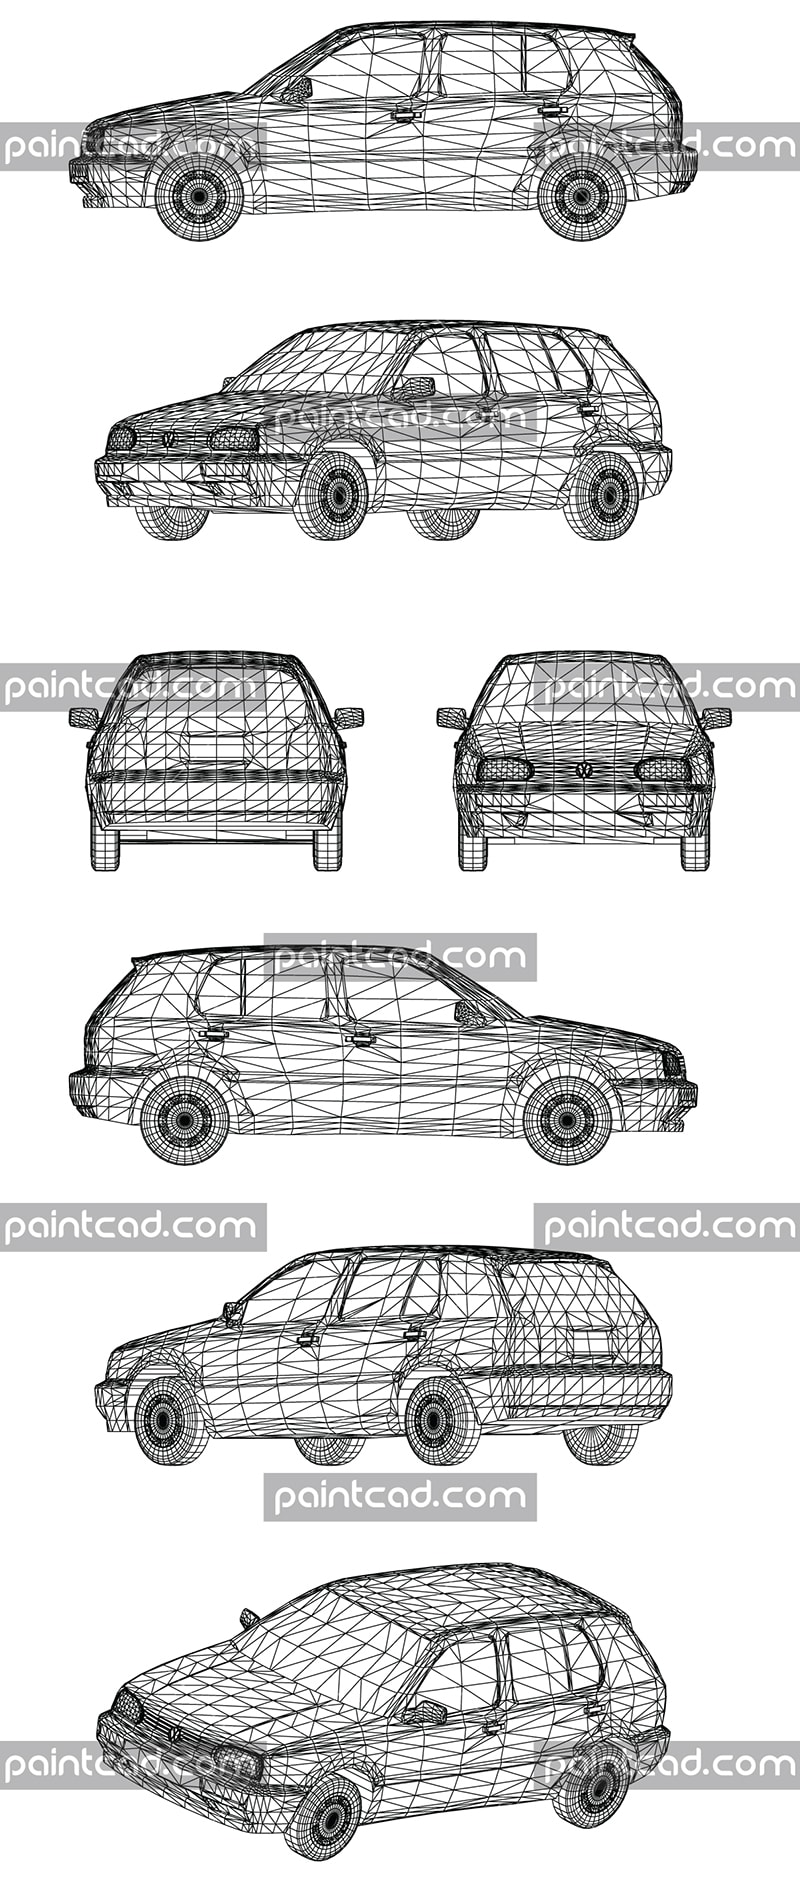 Wire design of a small family car Volkswagen made in Germany - vector illustration